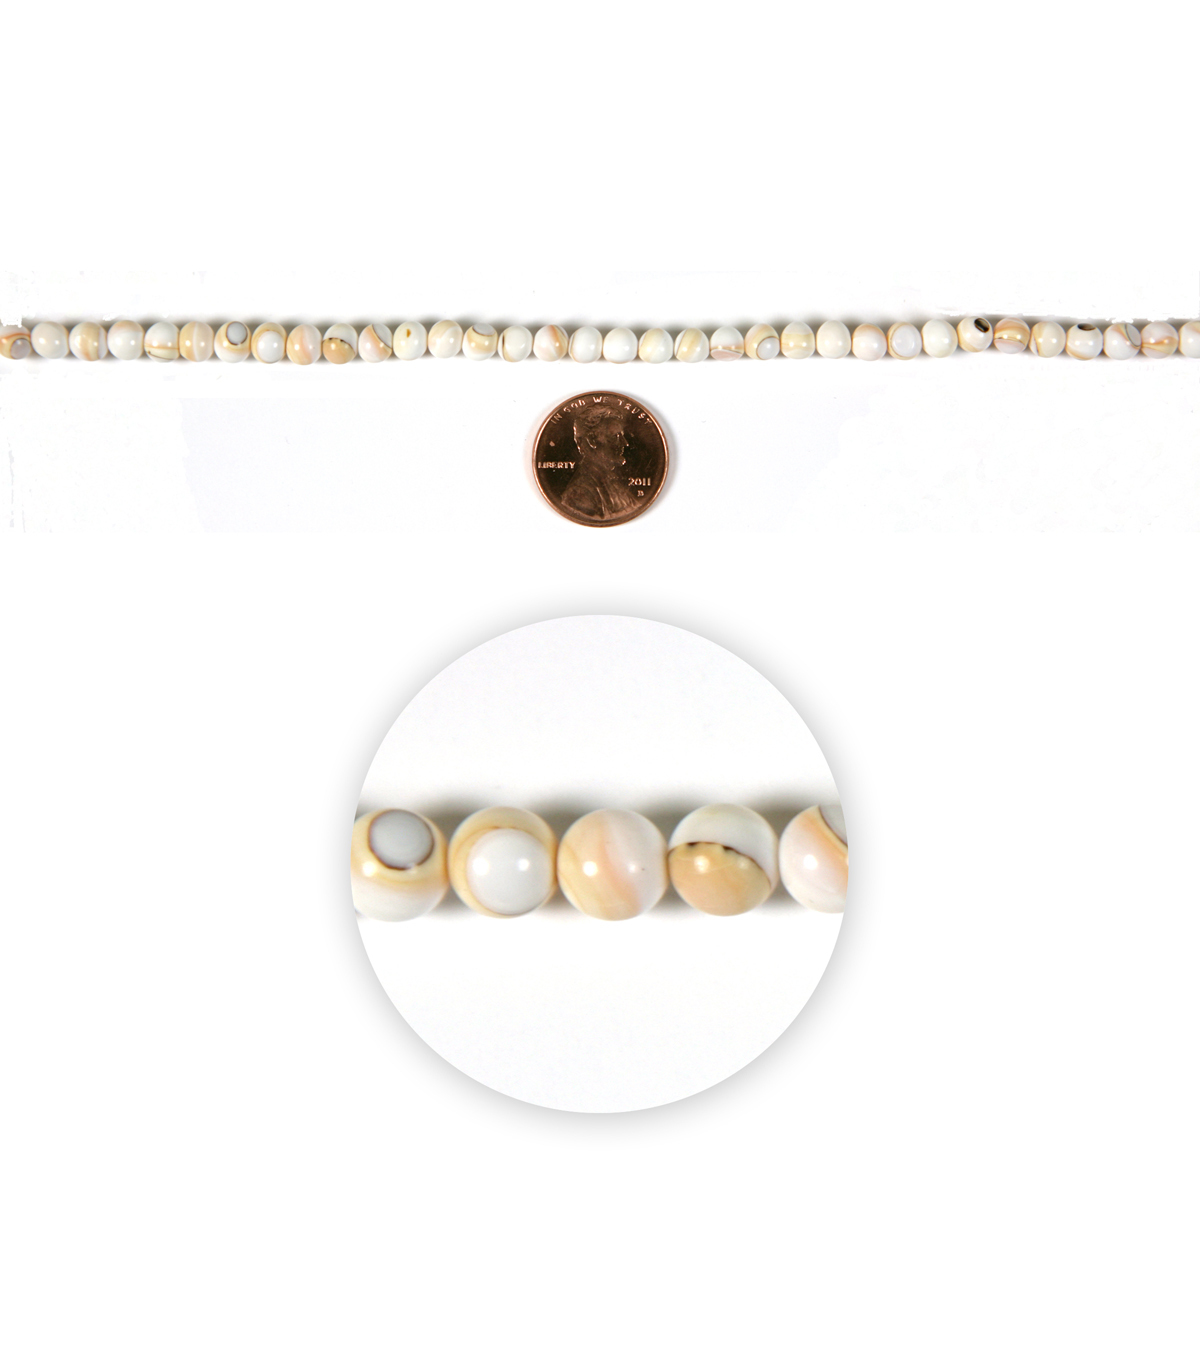 Blue Moon Strung Natural Shell Beads,Round,Natural Ivory/Peach